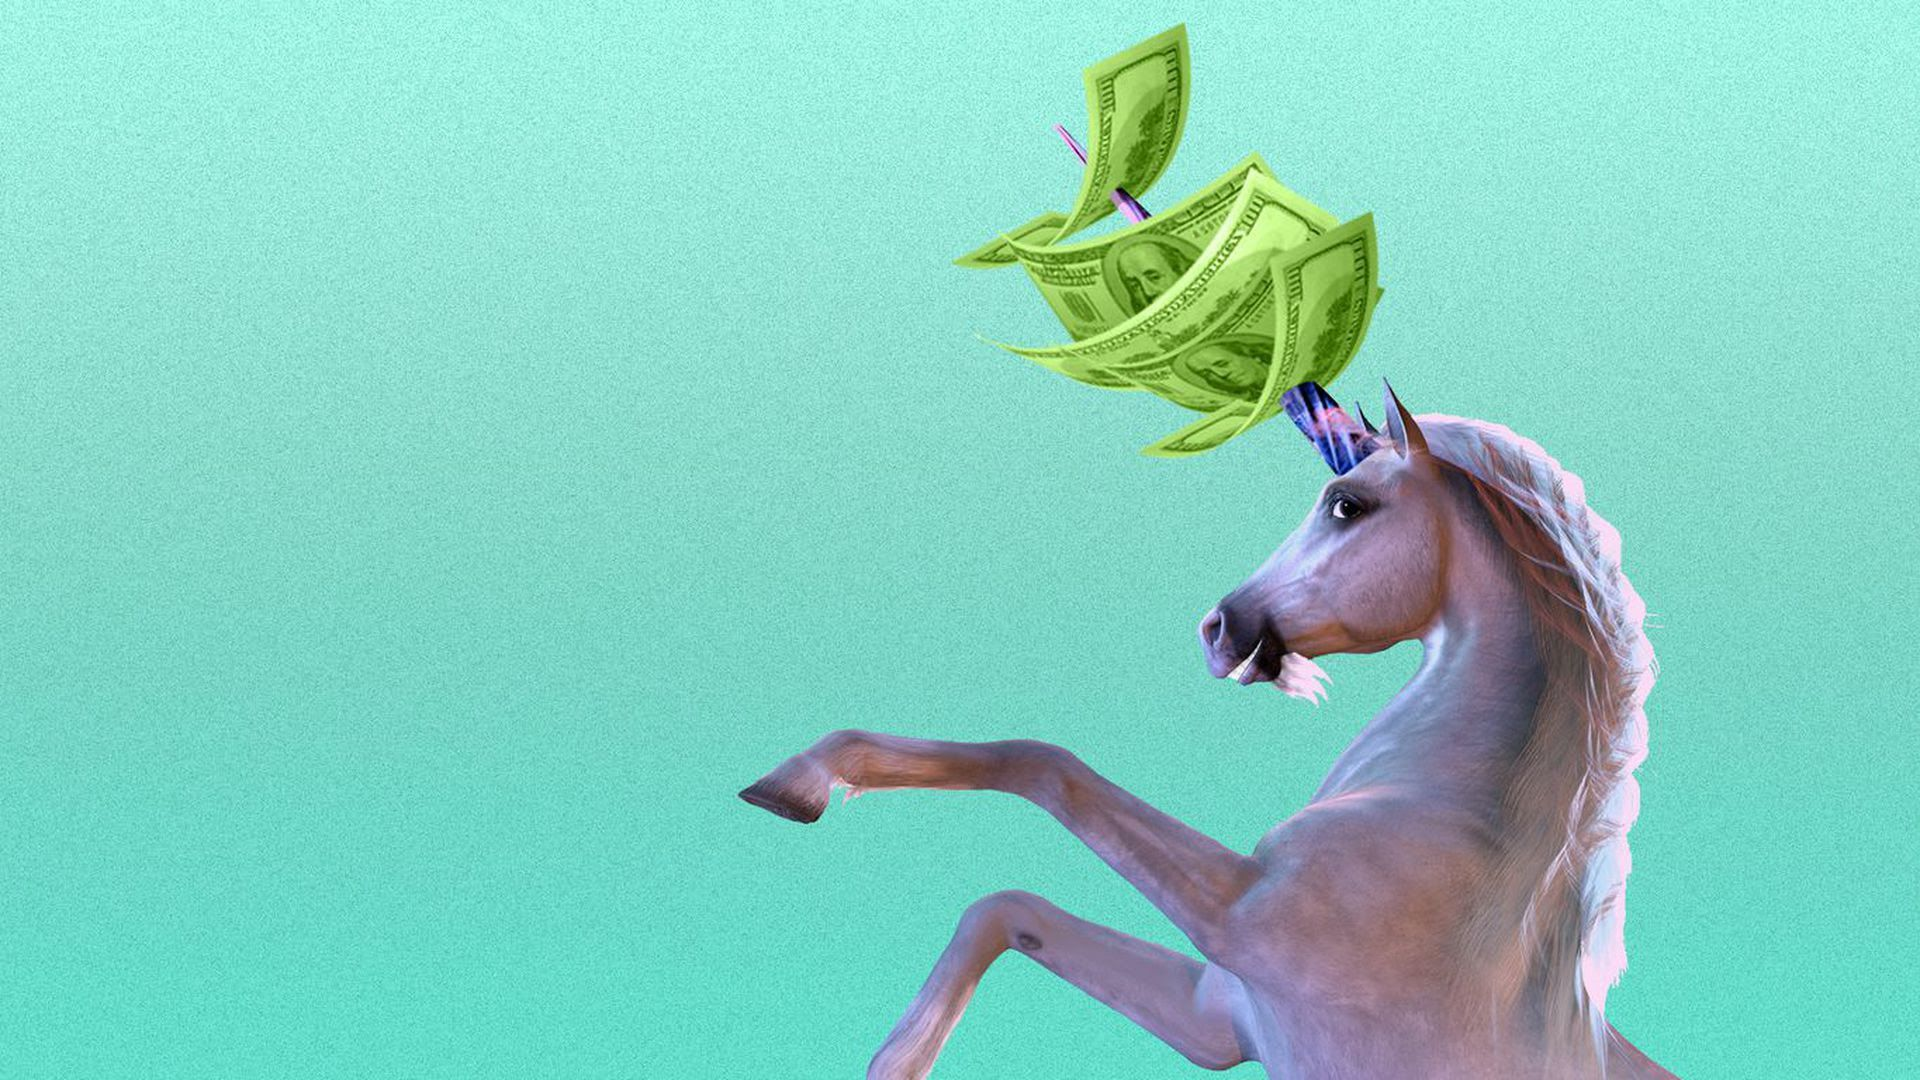 An illustration of a unicorn with cash speared through its horn.